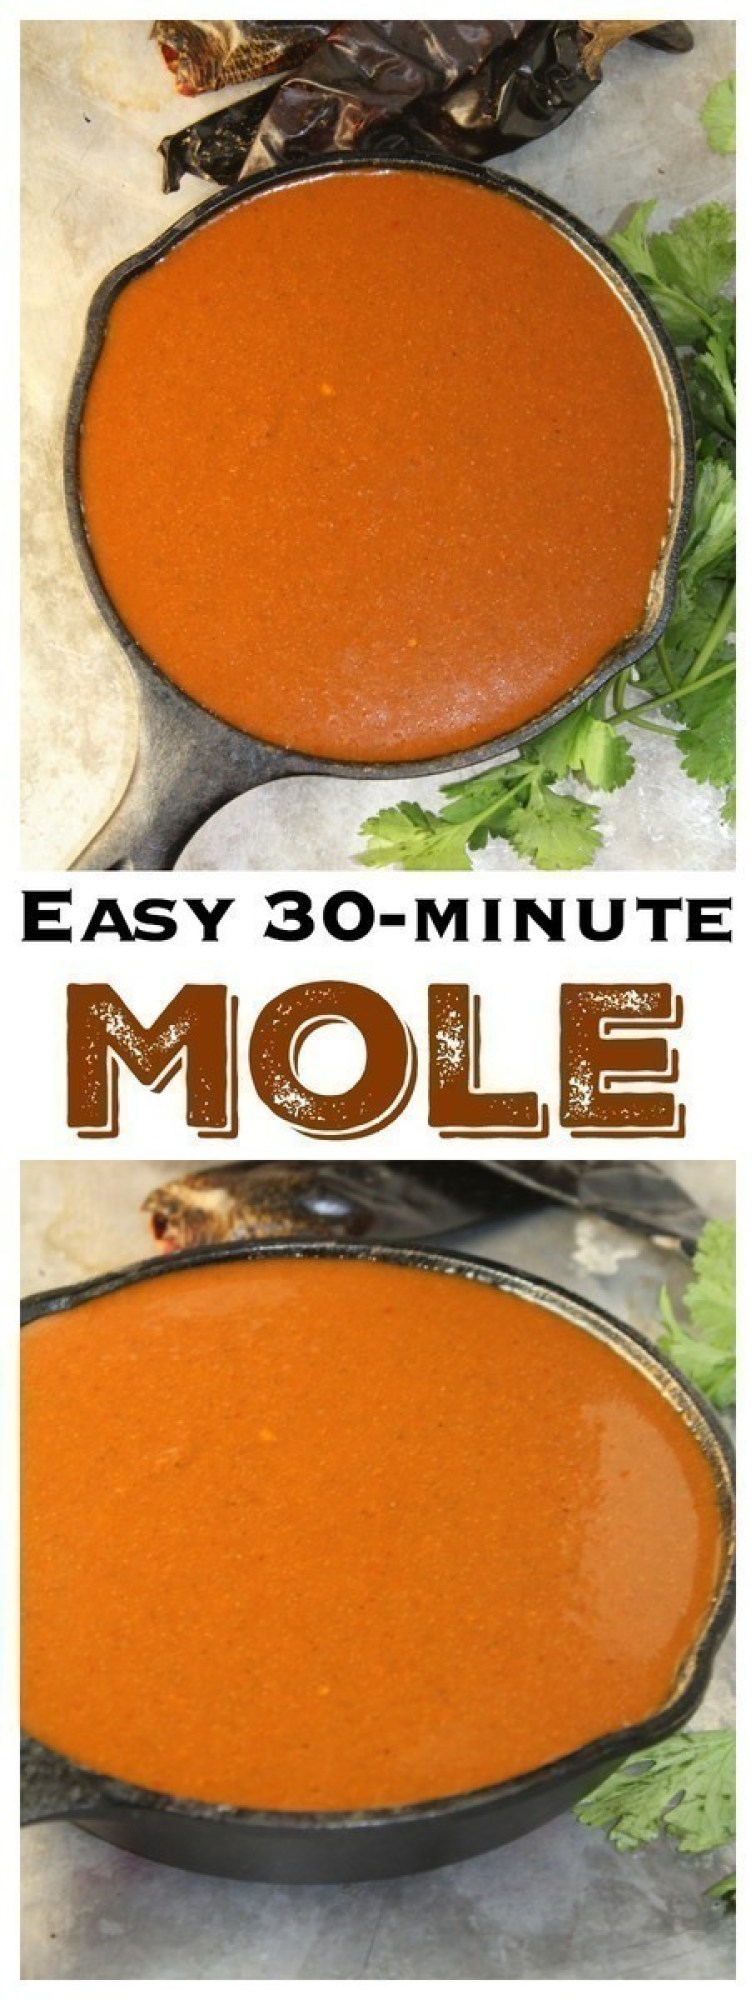 In Mexico, moles are reserved for special occasions and big parties, and can take hours to make with a long list of ingredients. This mole can be put together in just 30 minutes or less.